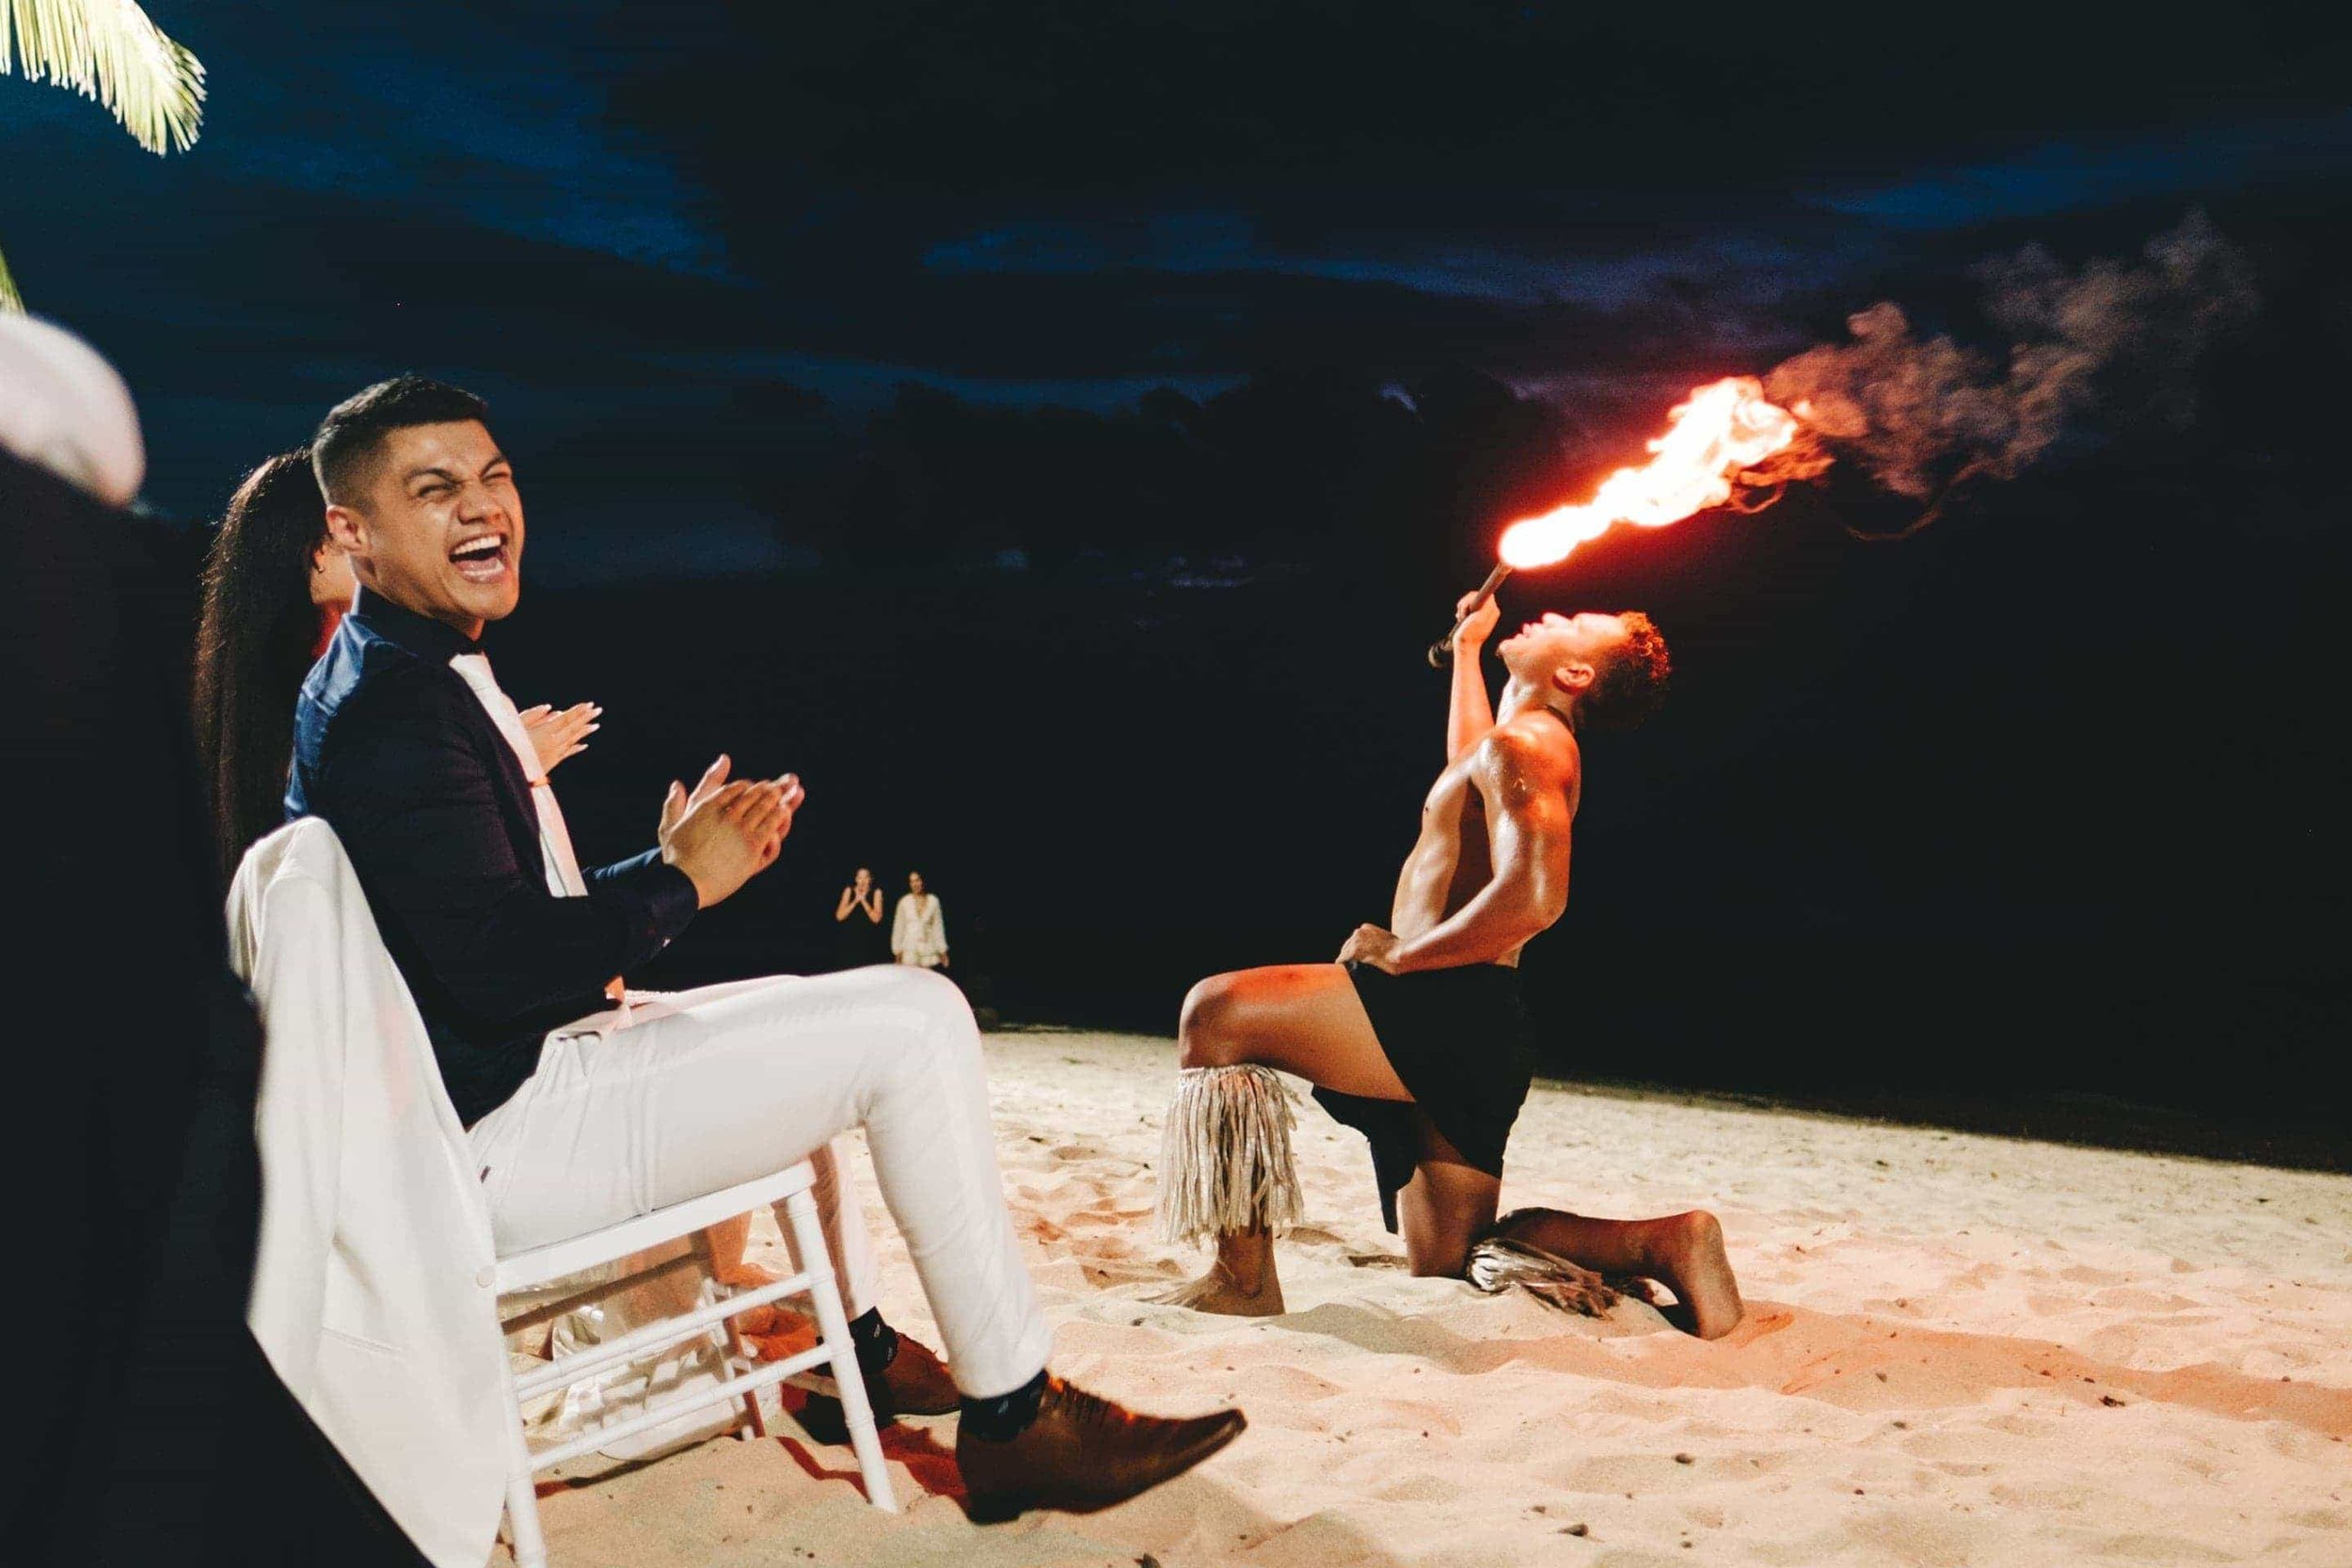 the groom laughing heartedly as a performer eats fire